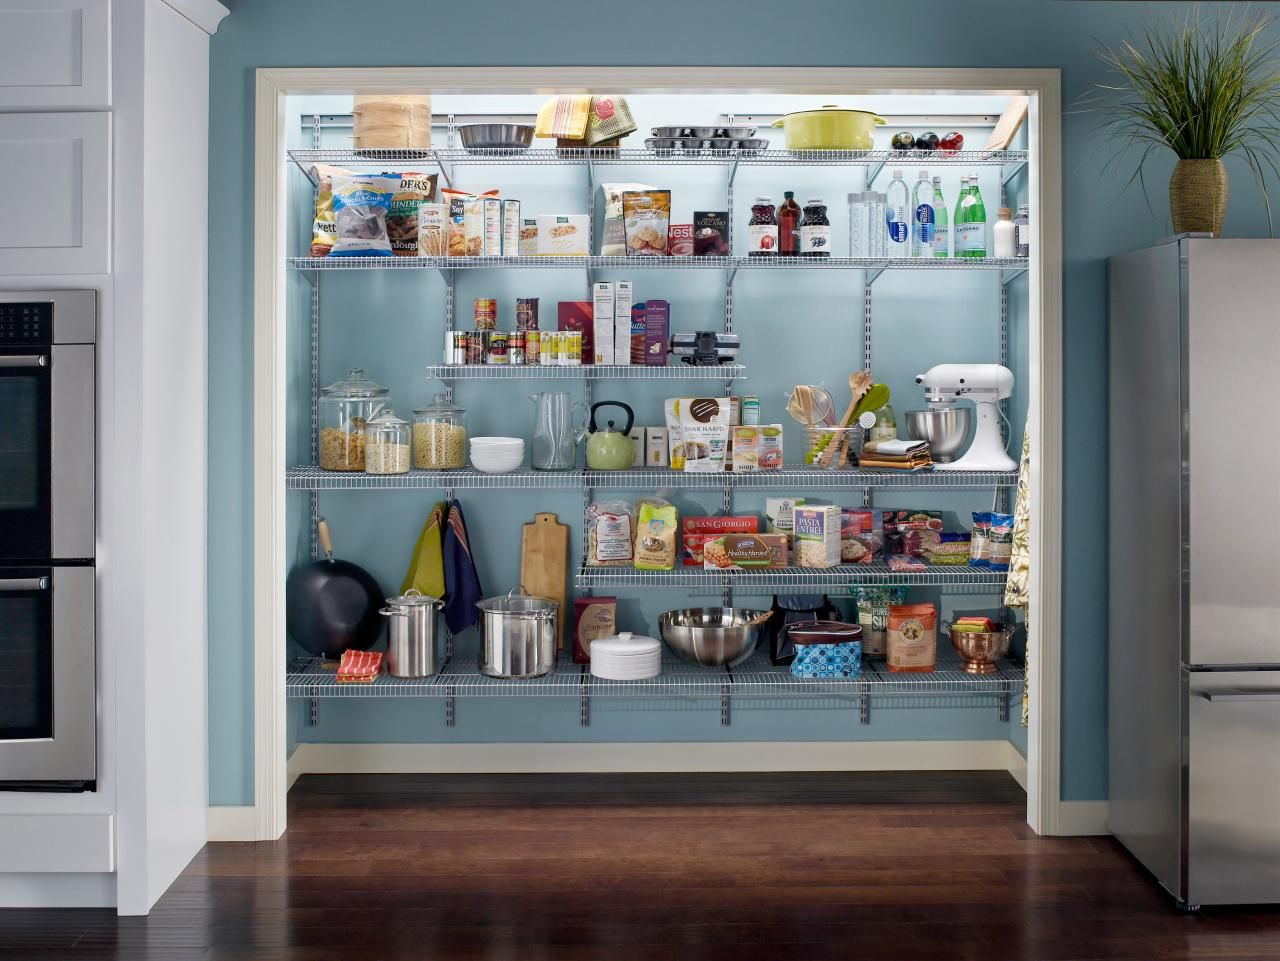 Maintain A Streamlined Kitchen Space With Pantry Shelving And Pullout  Options That Help Make Organizing A